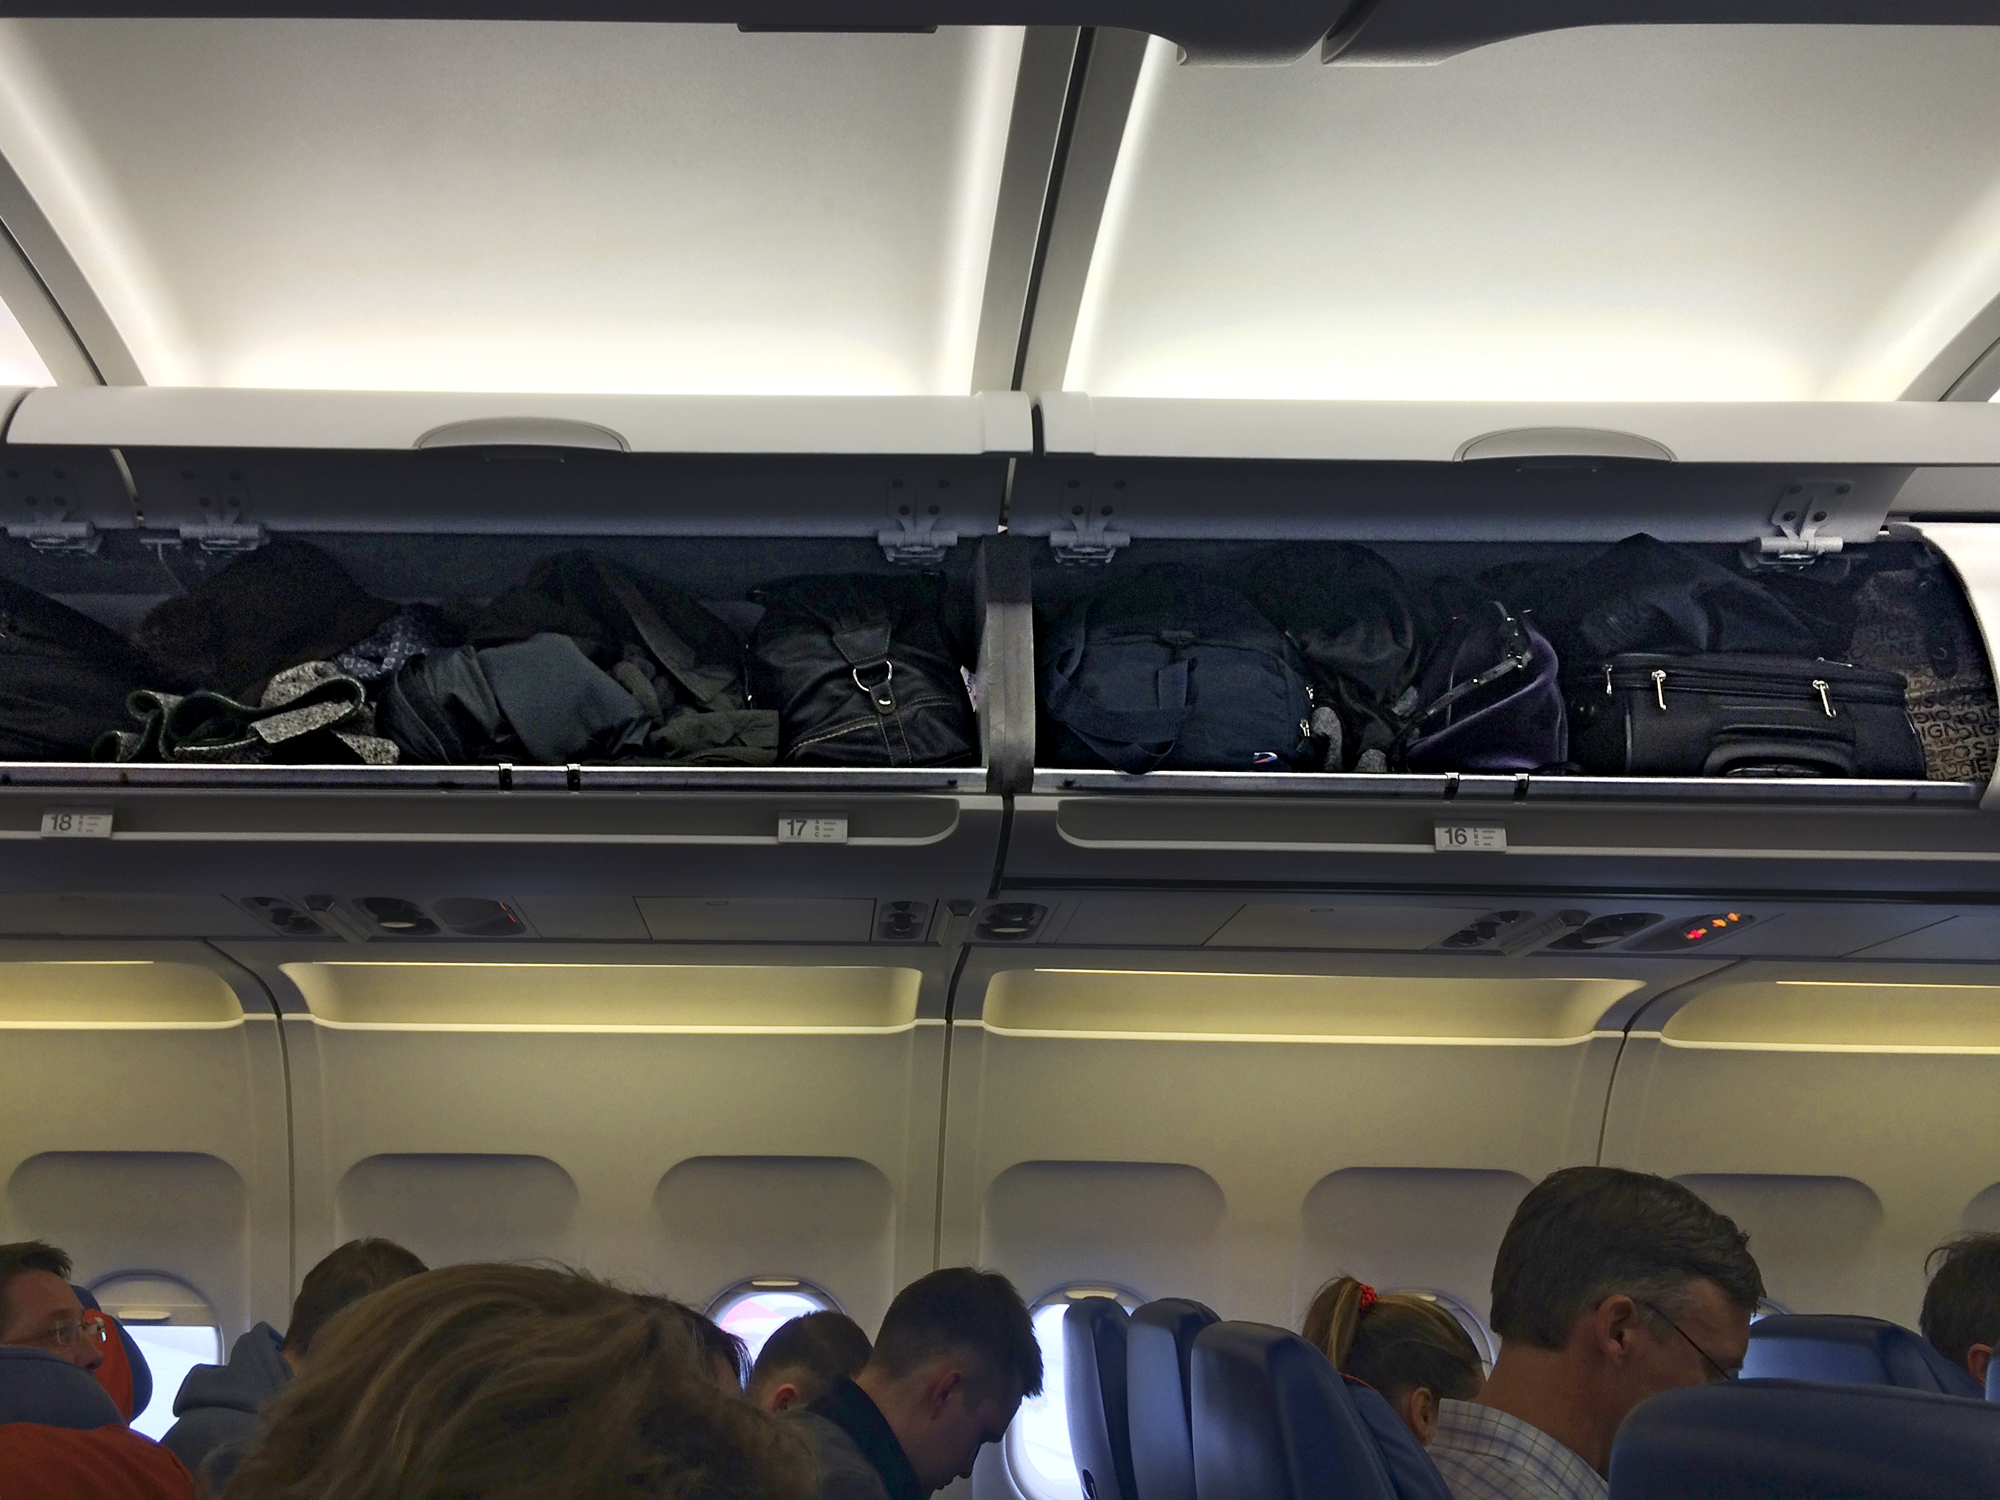 Hand luggage on the plane. Does Aeroflot rule others